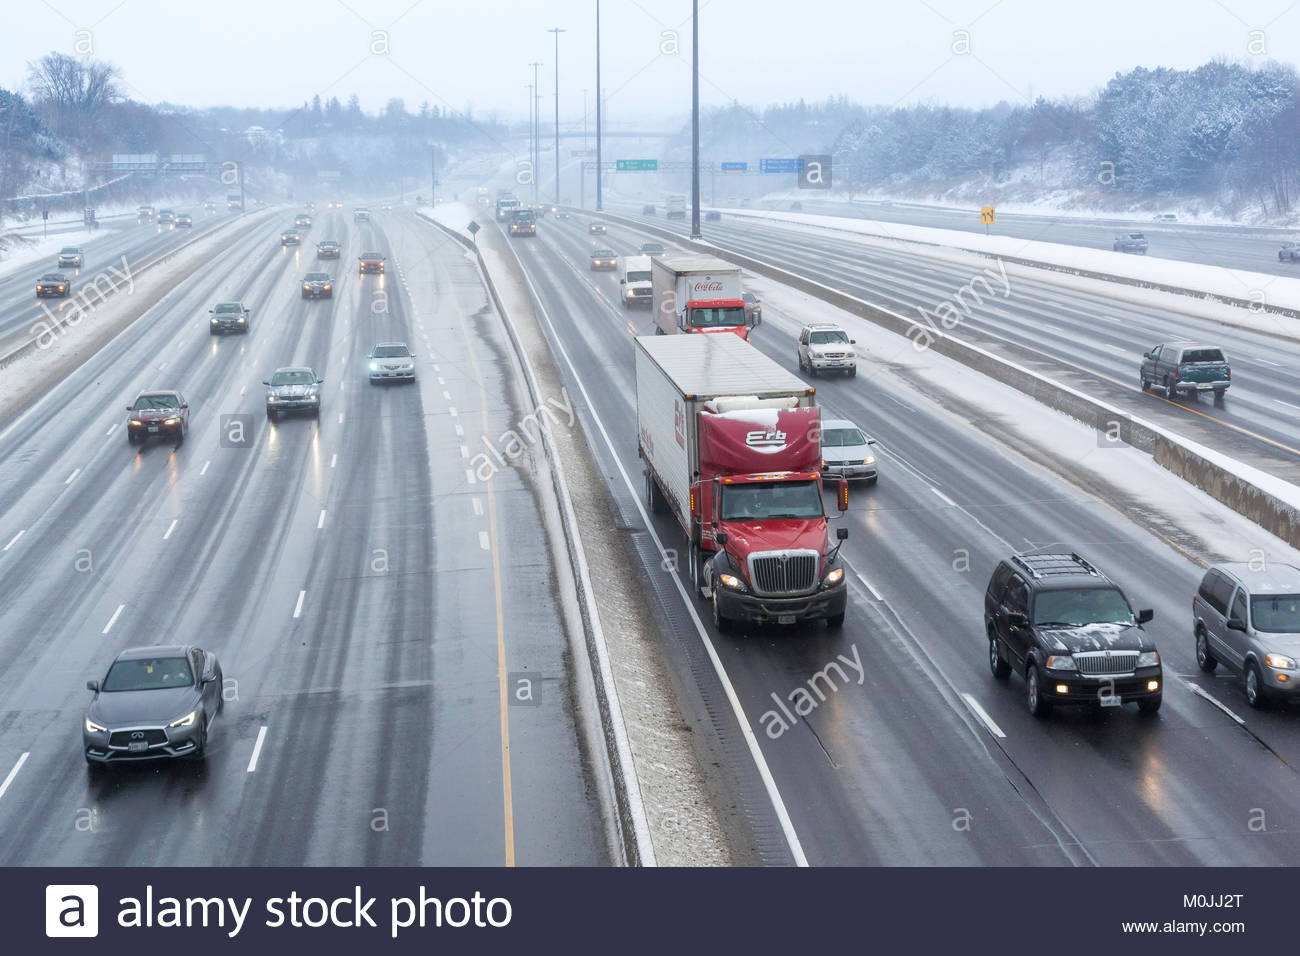 Winter freezing rain storm creates dangerous driving conditions on Highway 401 in Pickering Ontario Canada - Stock Image